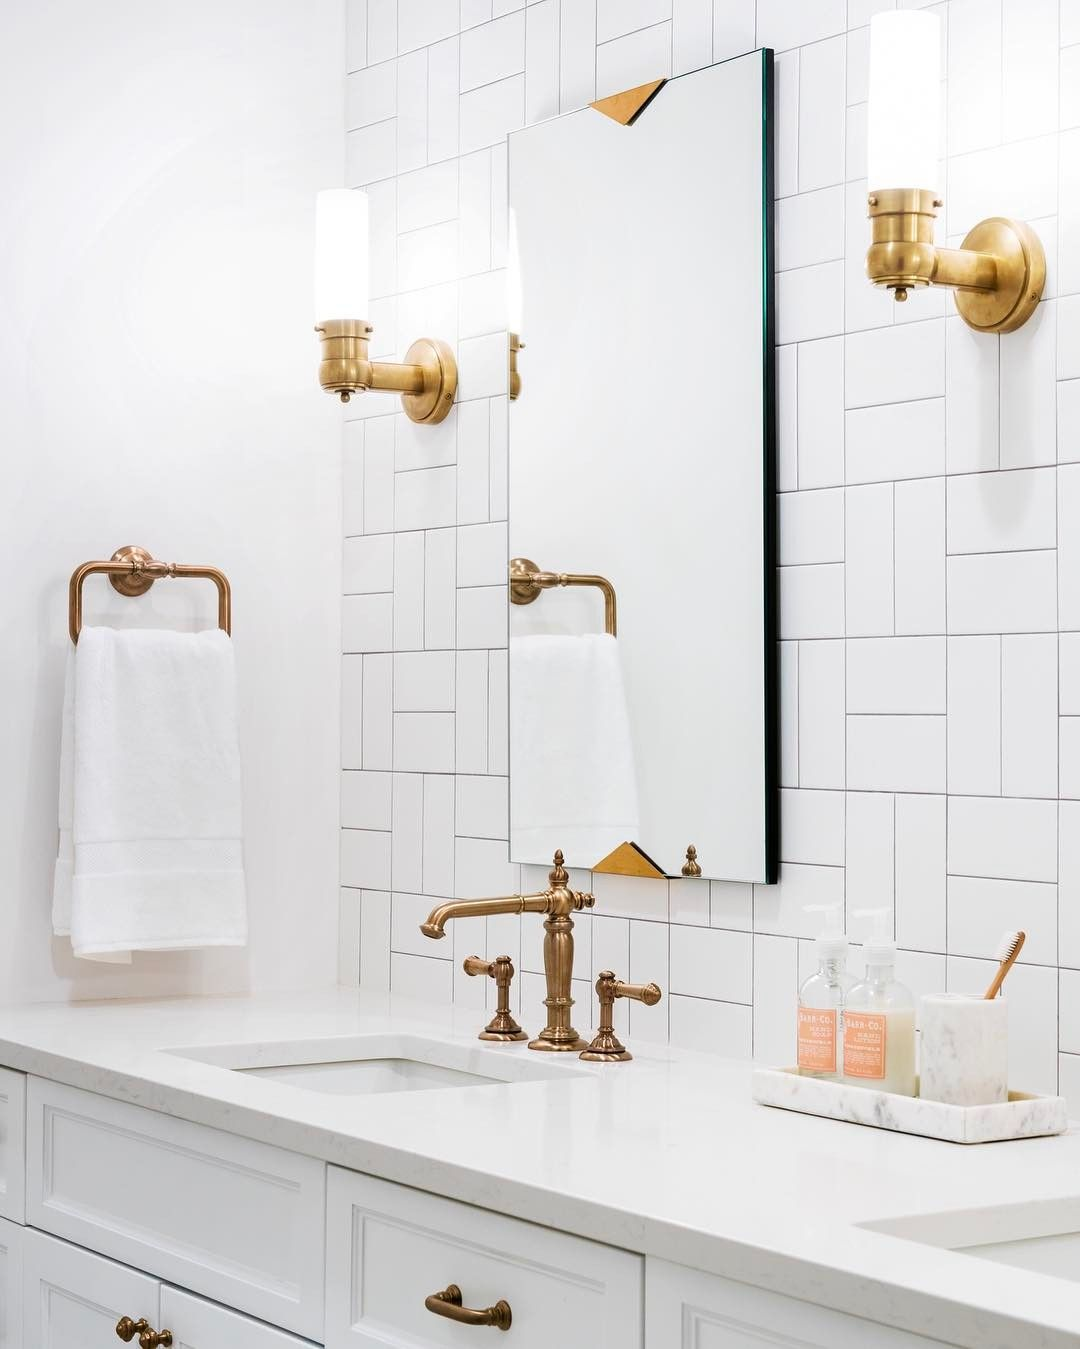 Gorgeous bathroom renovation caitlin wilson interior design 2019 - Geflieste badezimmer ...